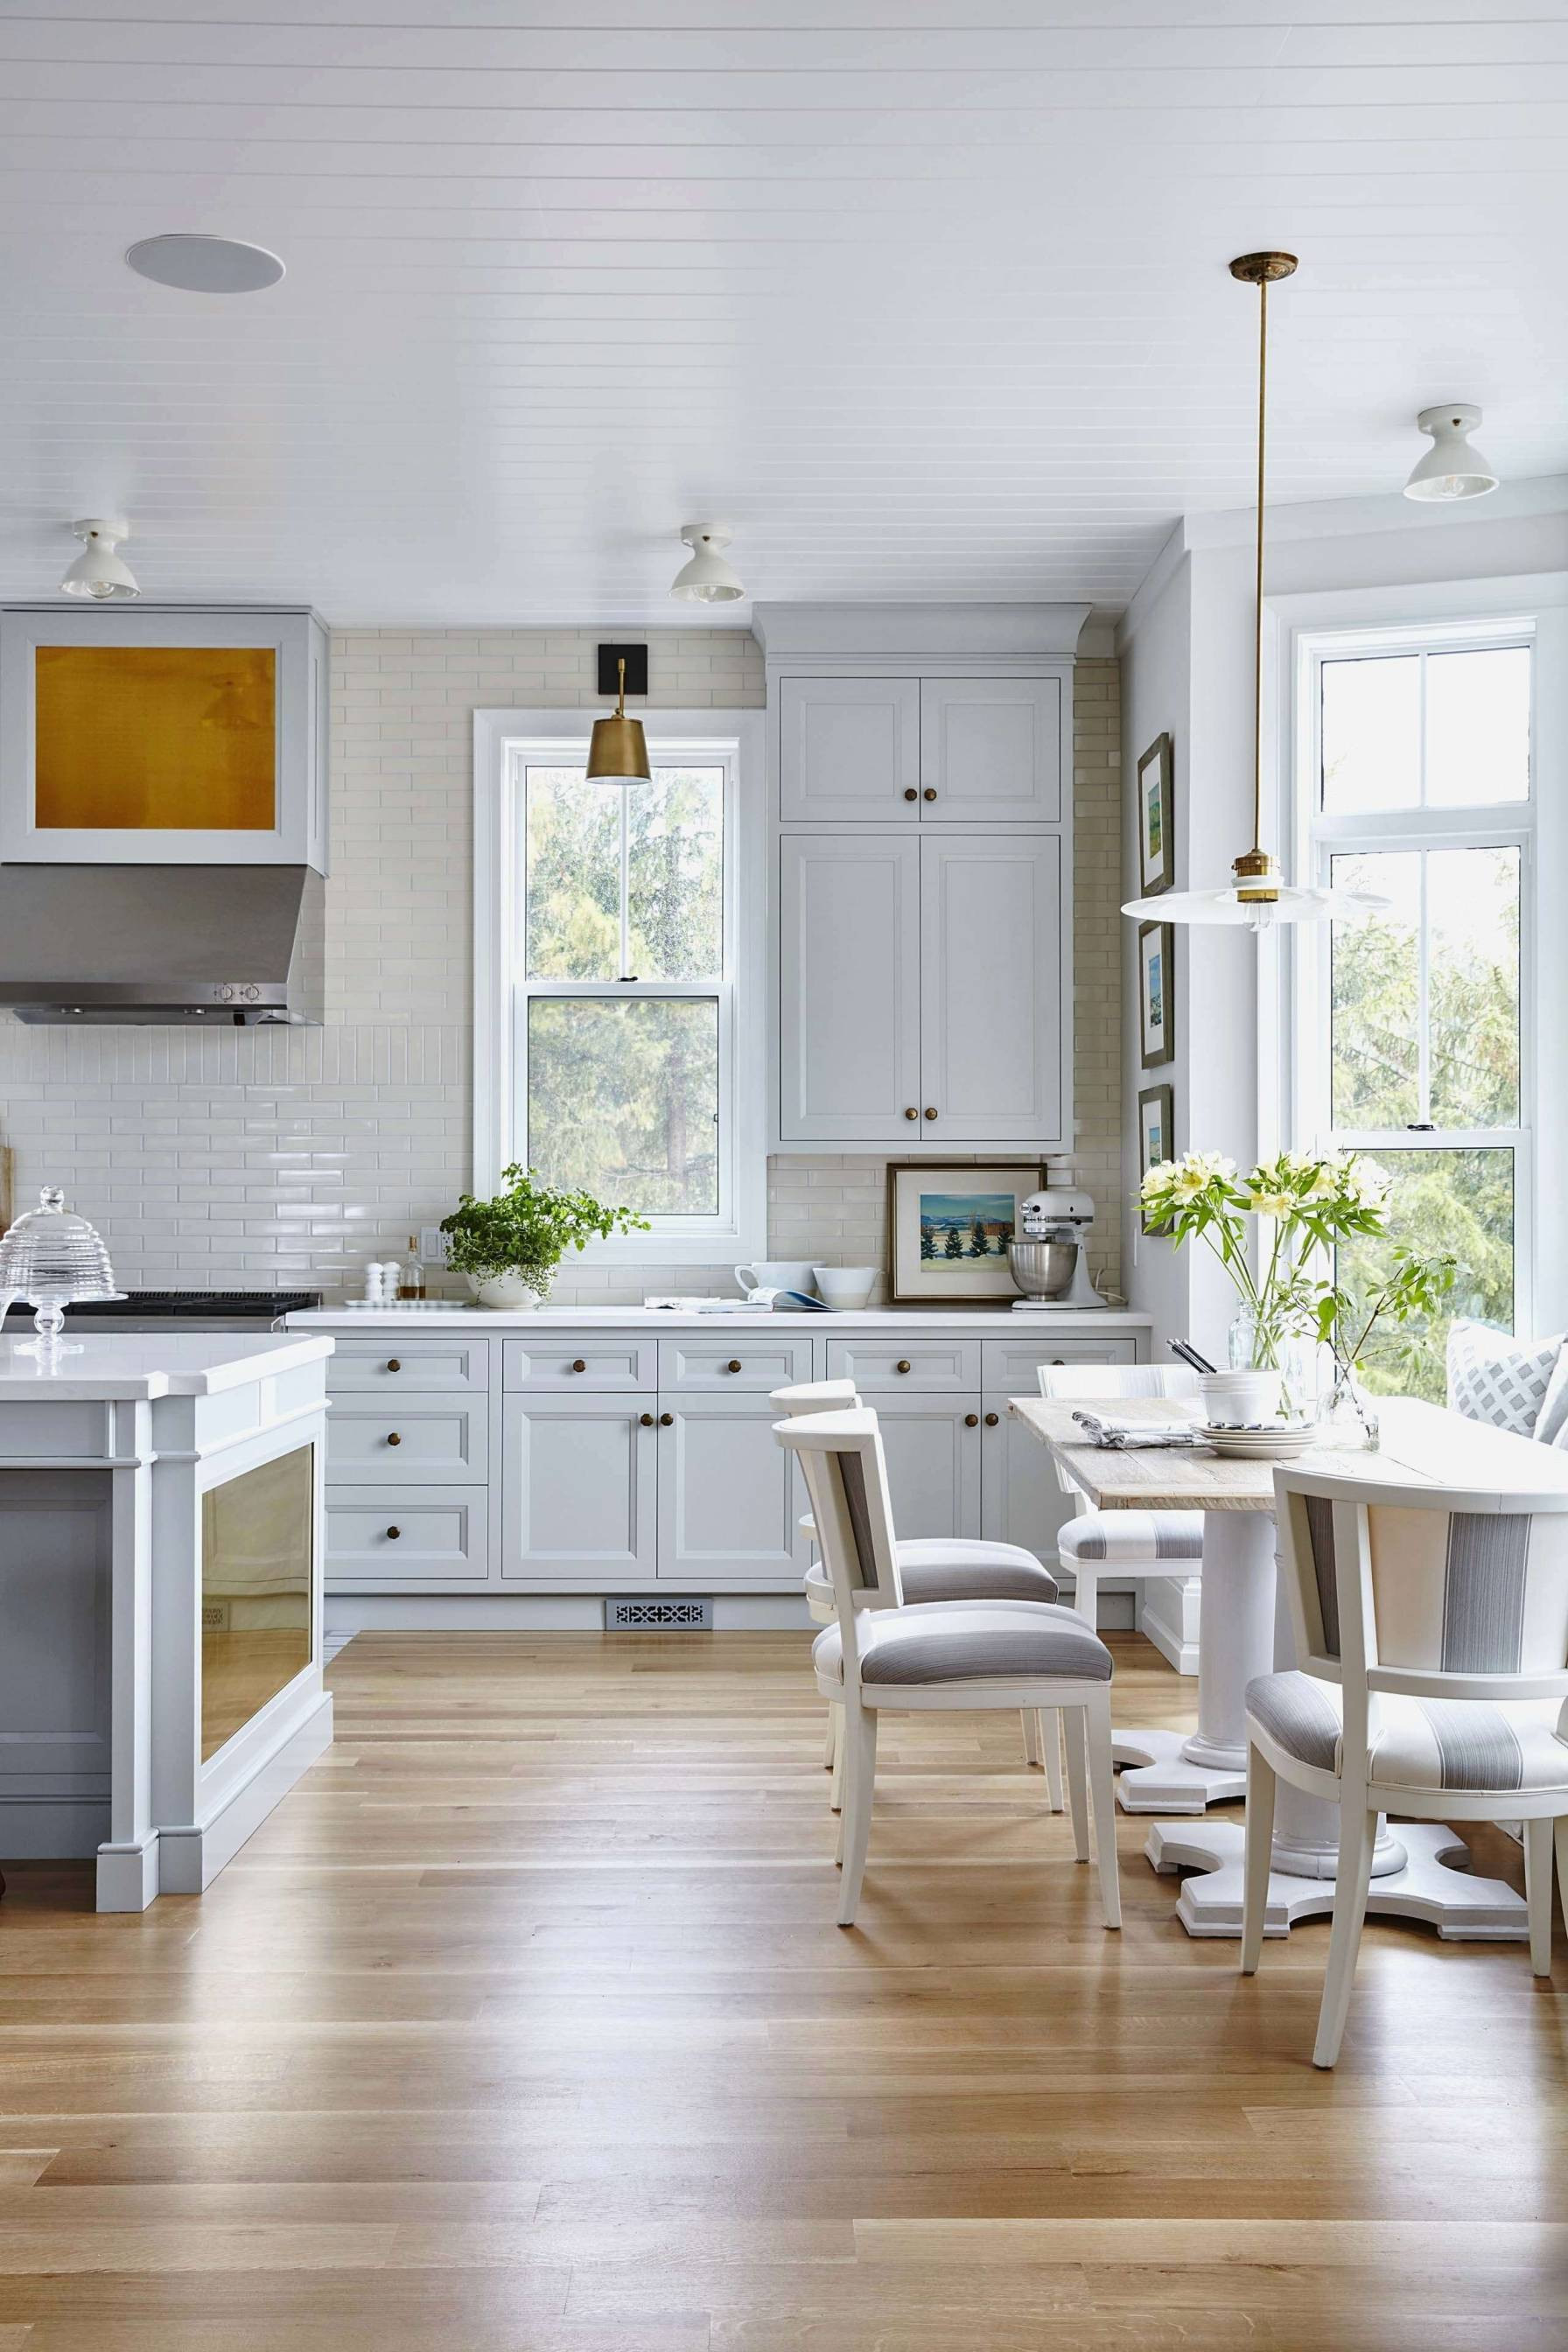 white kitchen with hardwood floors of 20 gray kitchen cabinets with hardwood floors graphics for kitchen joys kitchen joys kitchen 0d kitchens design ideas design scheme gray kitchen cabinet